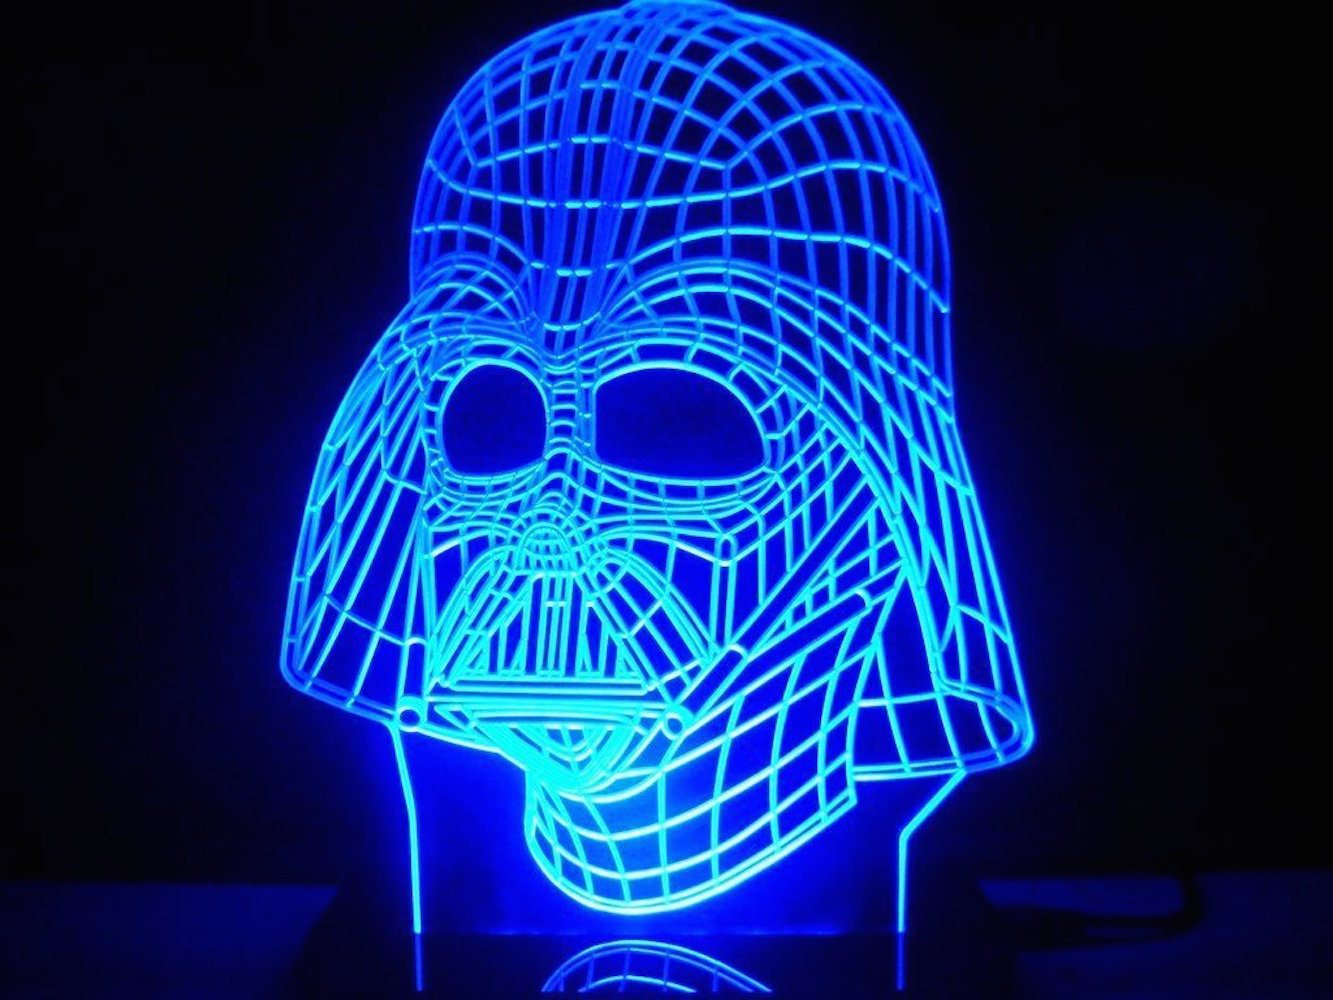 darth-vader-led-light-table-lamp-03